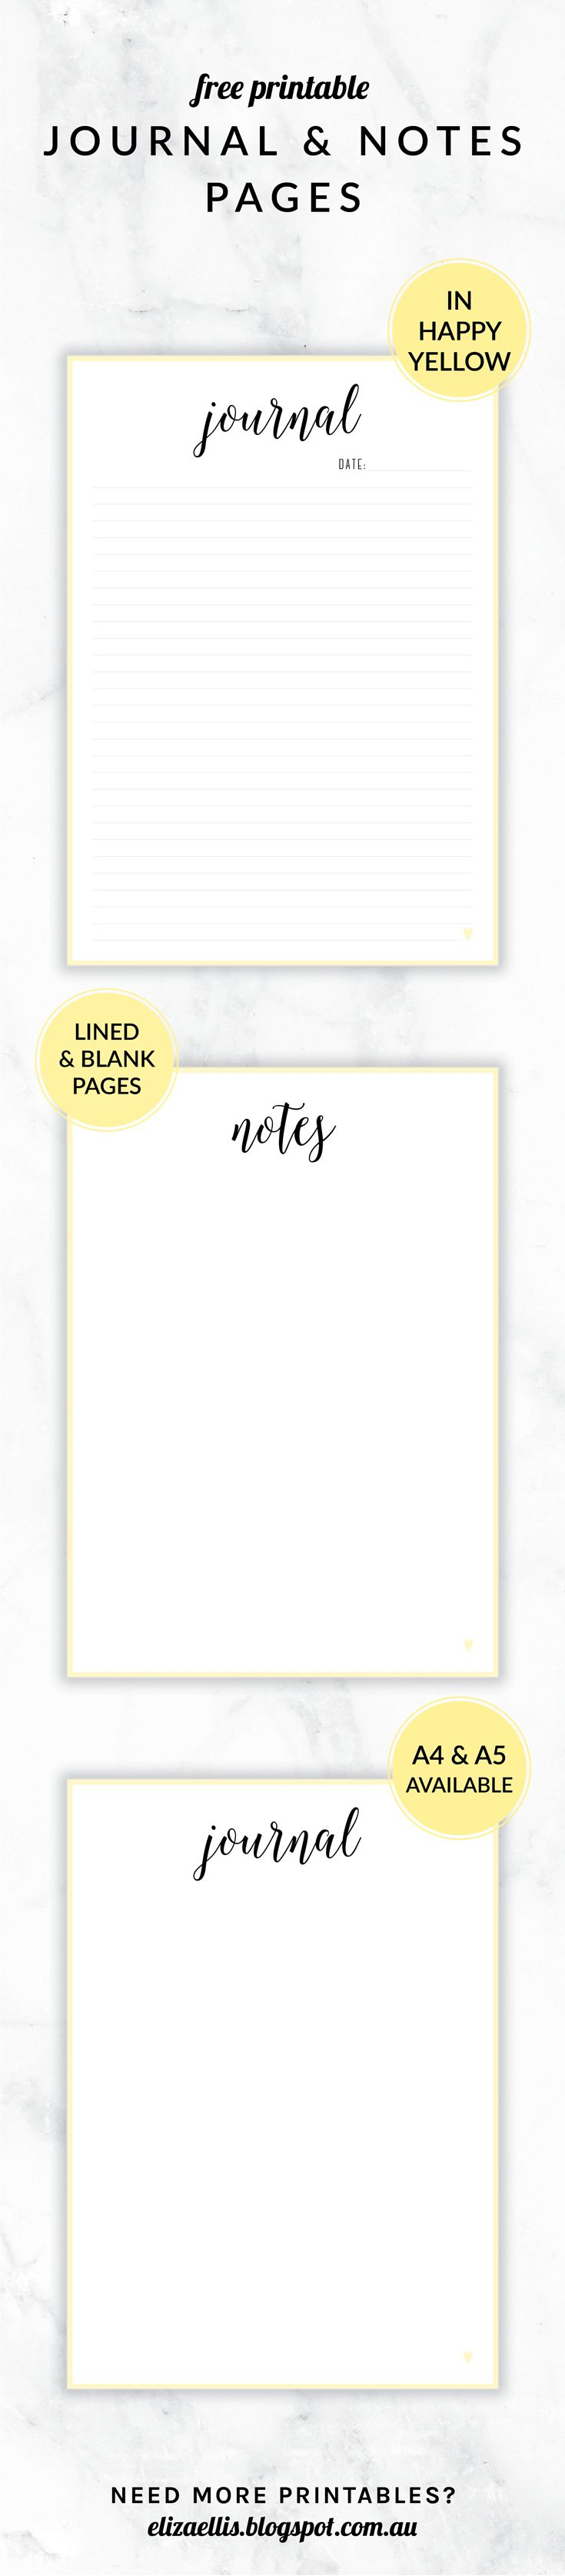 // Eliza Ellis    Free Printable Irma Journal and Notes Pages. Includes lined and unlined versions as well as follower pages. Available in 6 colors and in both A4 and A5 sizes.